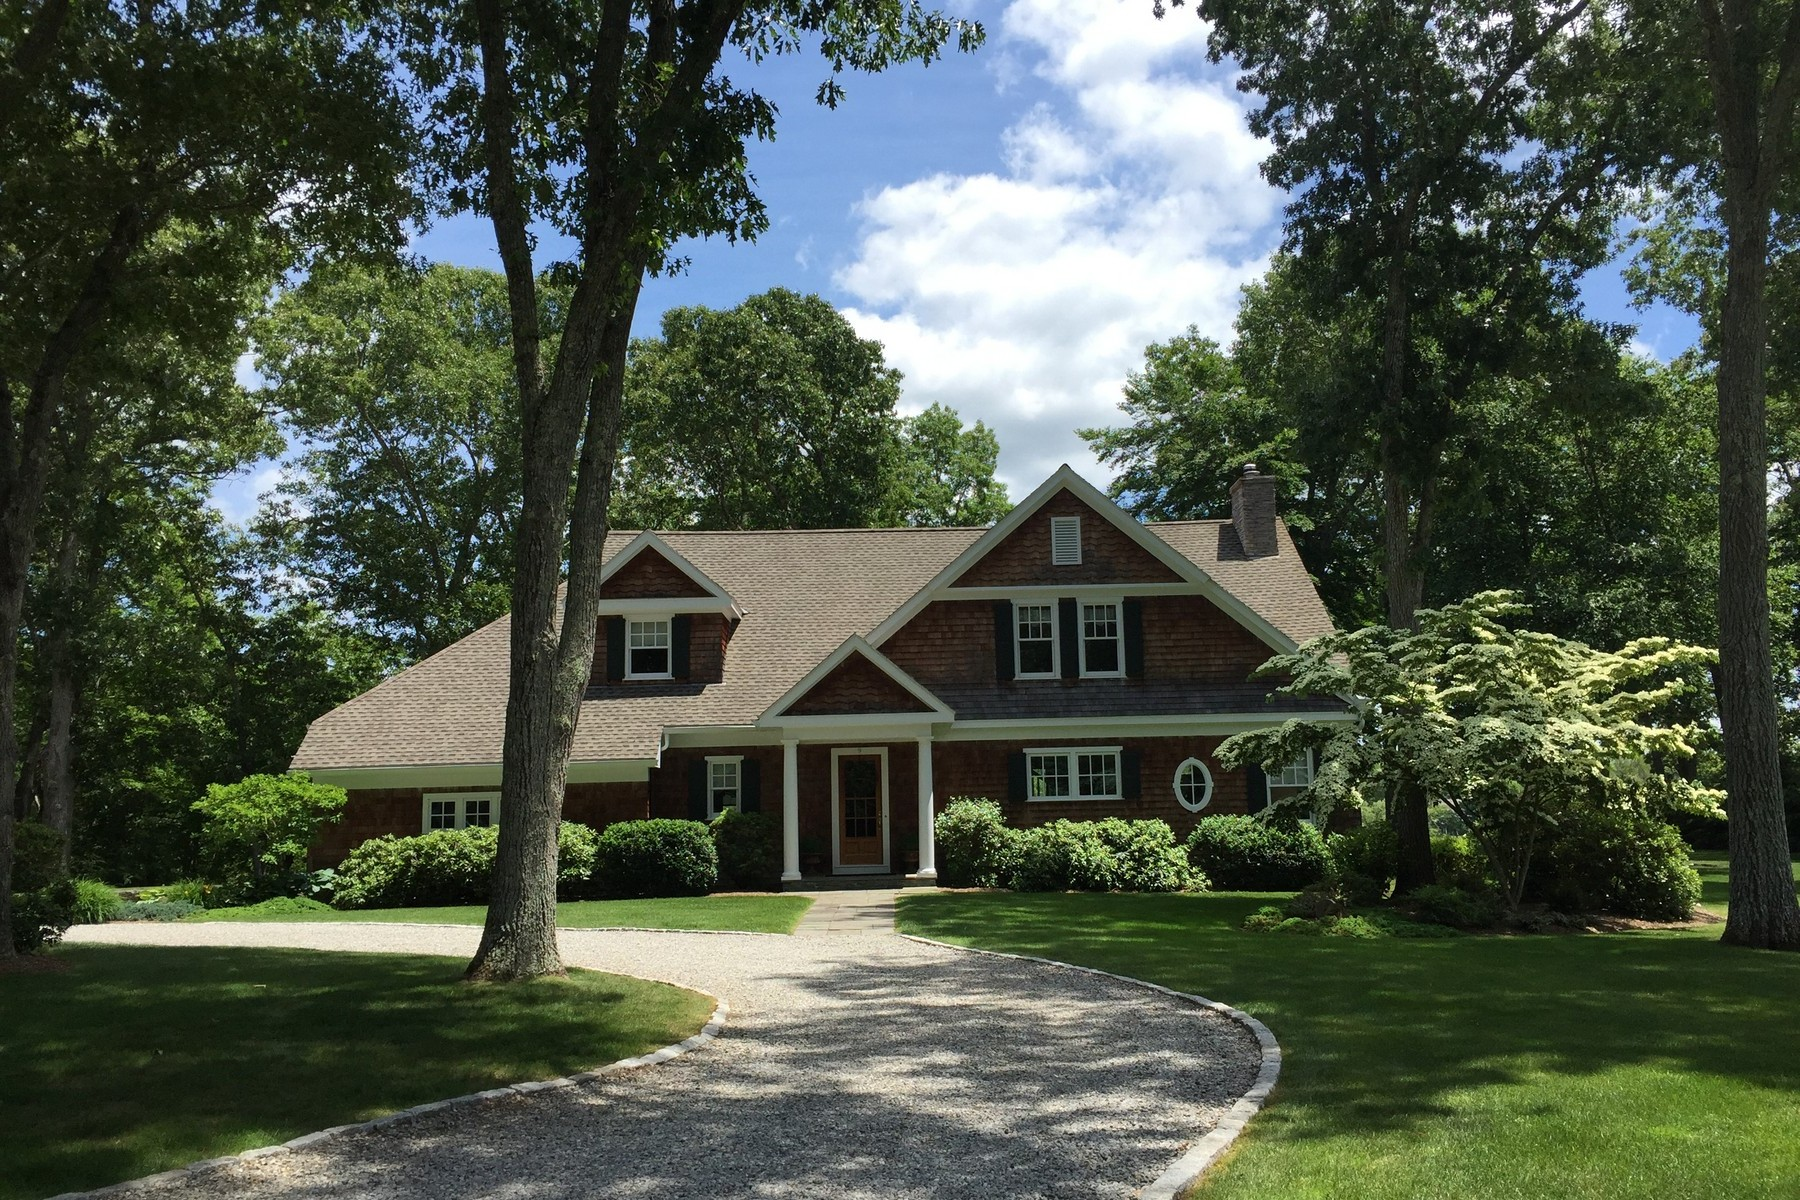 Casa Unifamiliar por un Venta en Direct Waterfront in Desirable Talcott Farm 9 Talcott Farm Road Old Lyme, Connecticut 06371 Estados Unidos